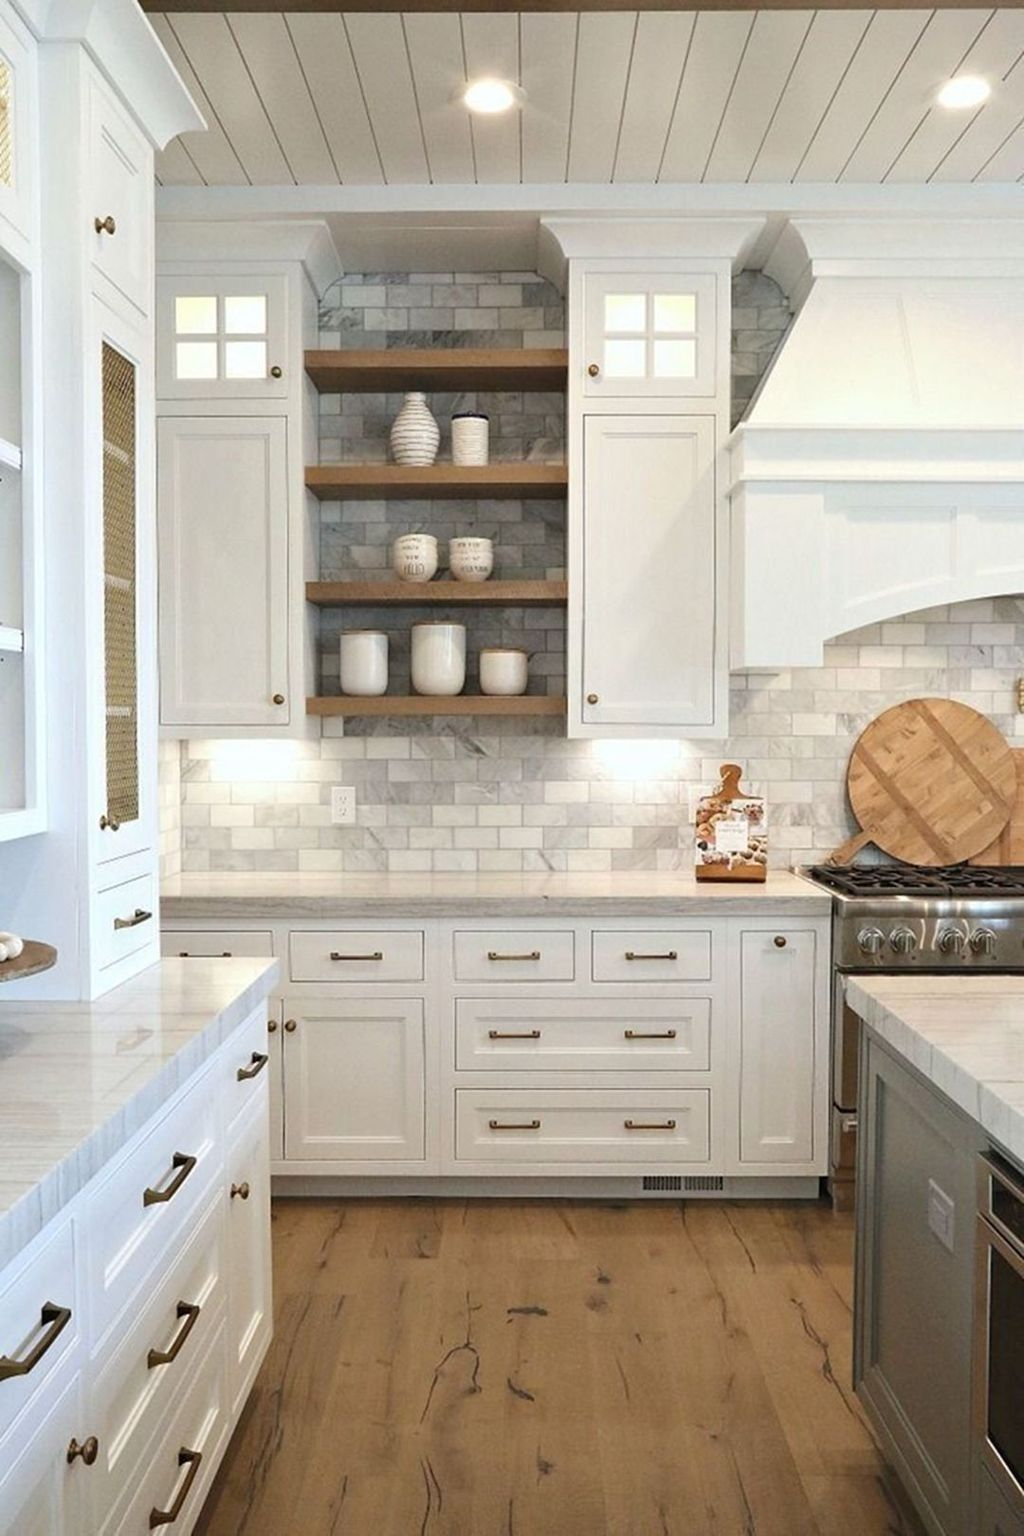 35 Cool Kitchen Design Ideas With Temporary Looks In 2020 Modern Kitchen Rustic Kitchen Kitchen Cabinet Design